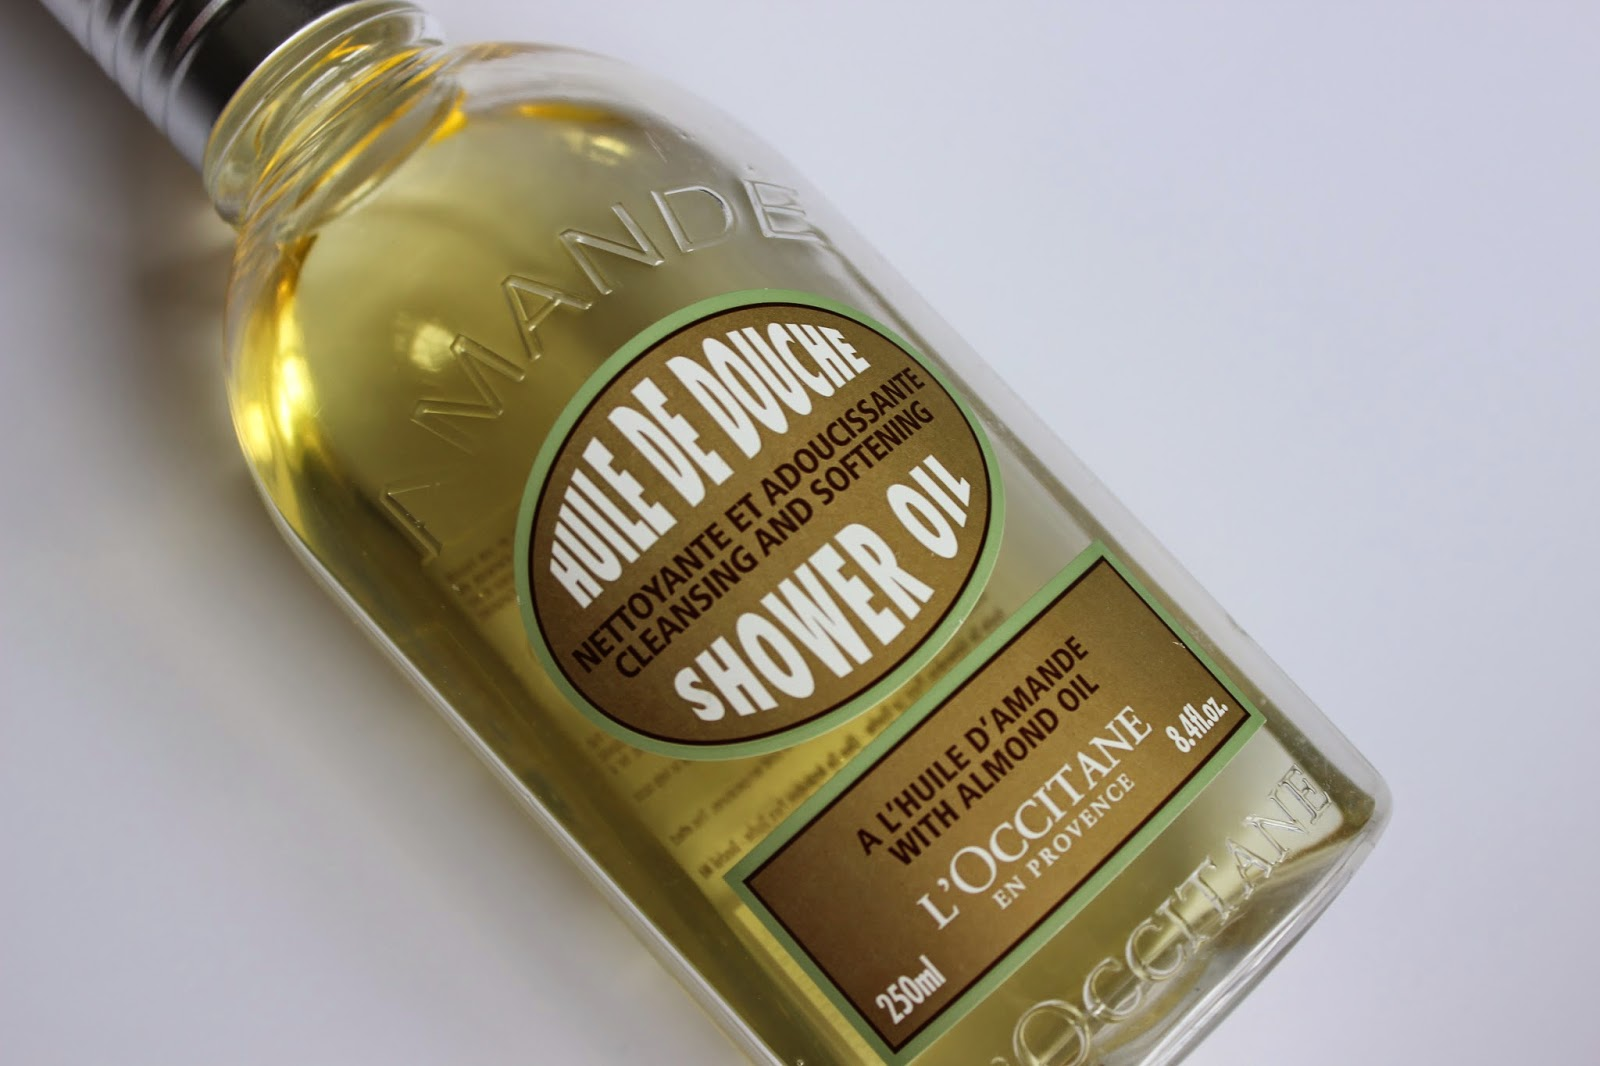 L'Occitane, Shower Oil, review, Sephora, dry skin, HG, body